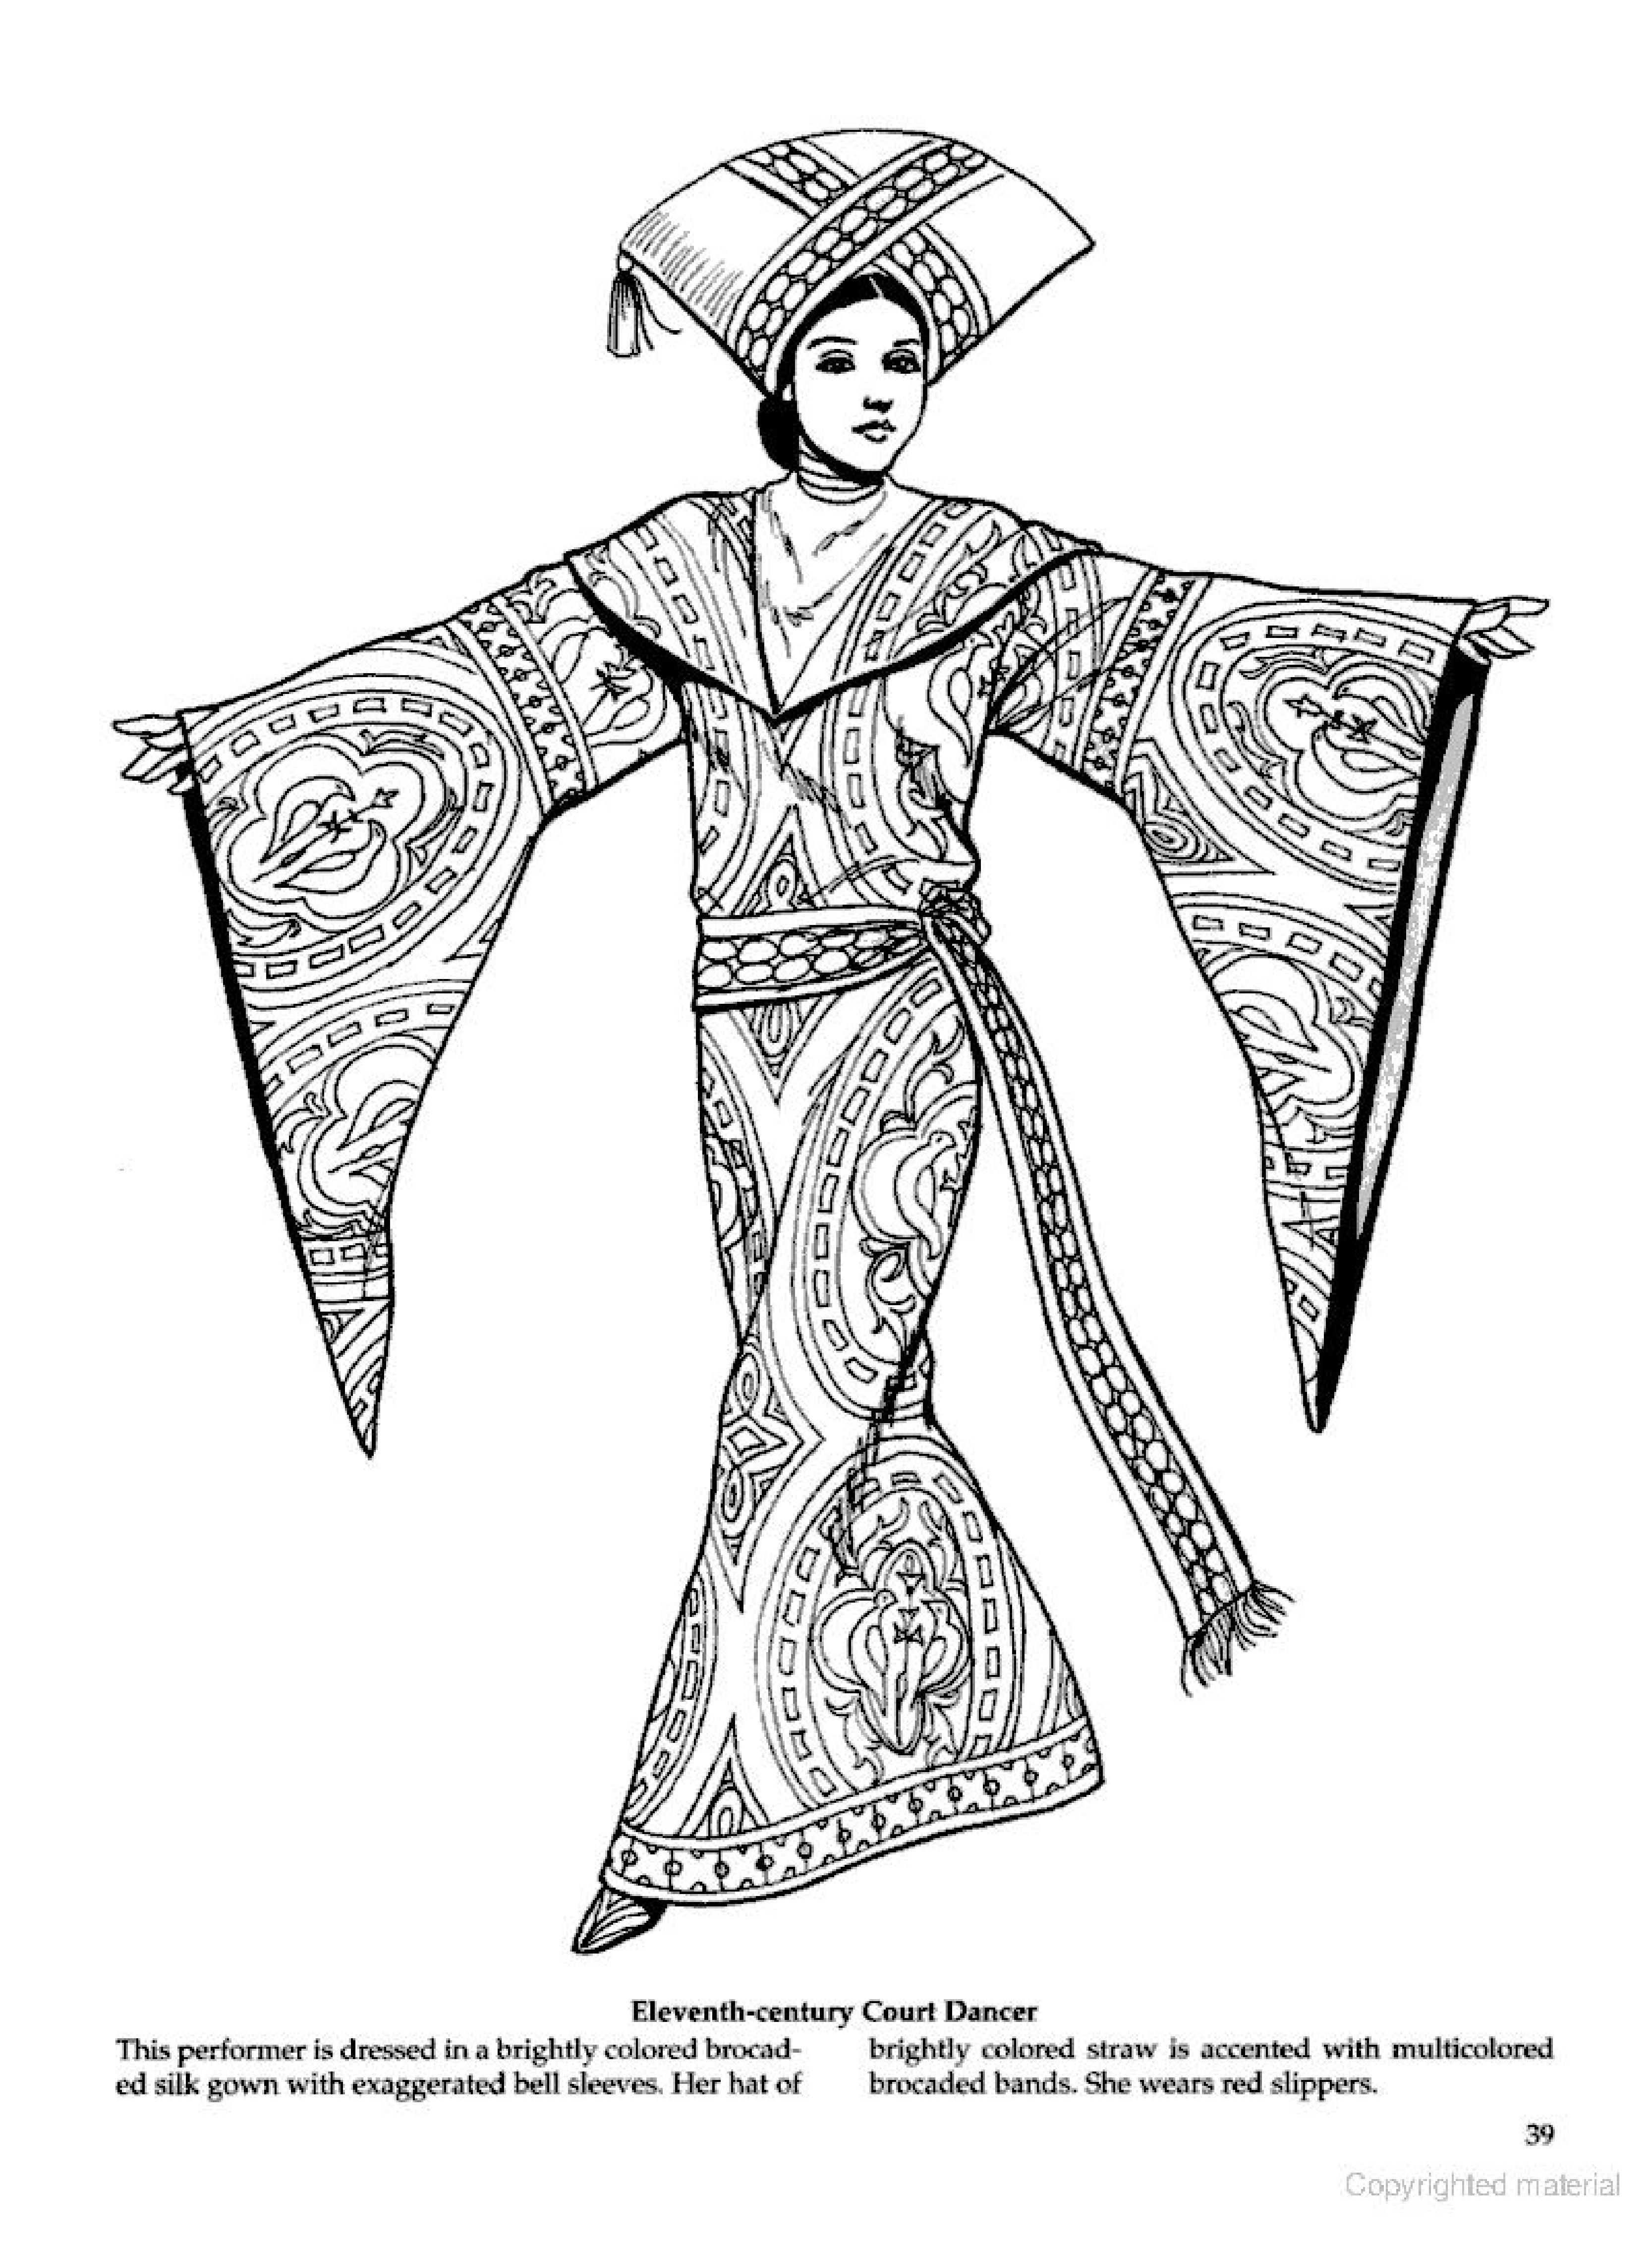 11 Th Century Court Dancer Byzantine Fashions Coloring Page Fabric Art Fashion Coloring Pages Historical Fashion